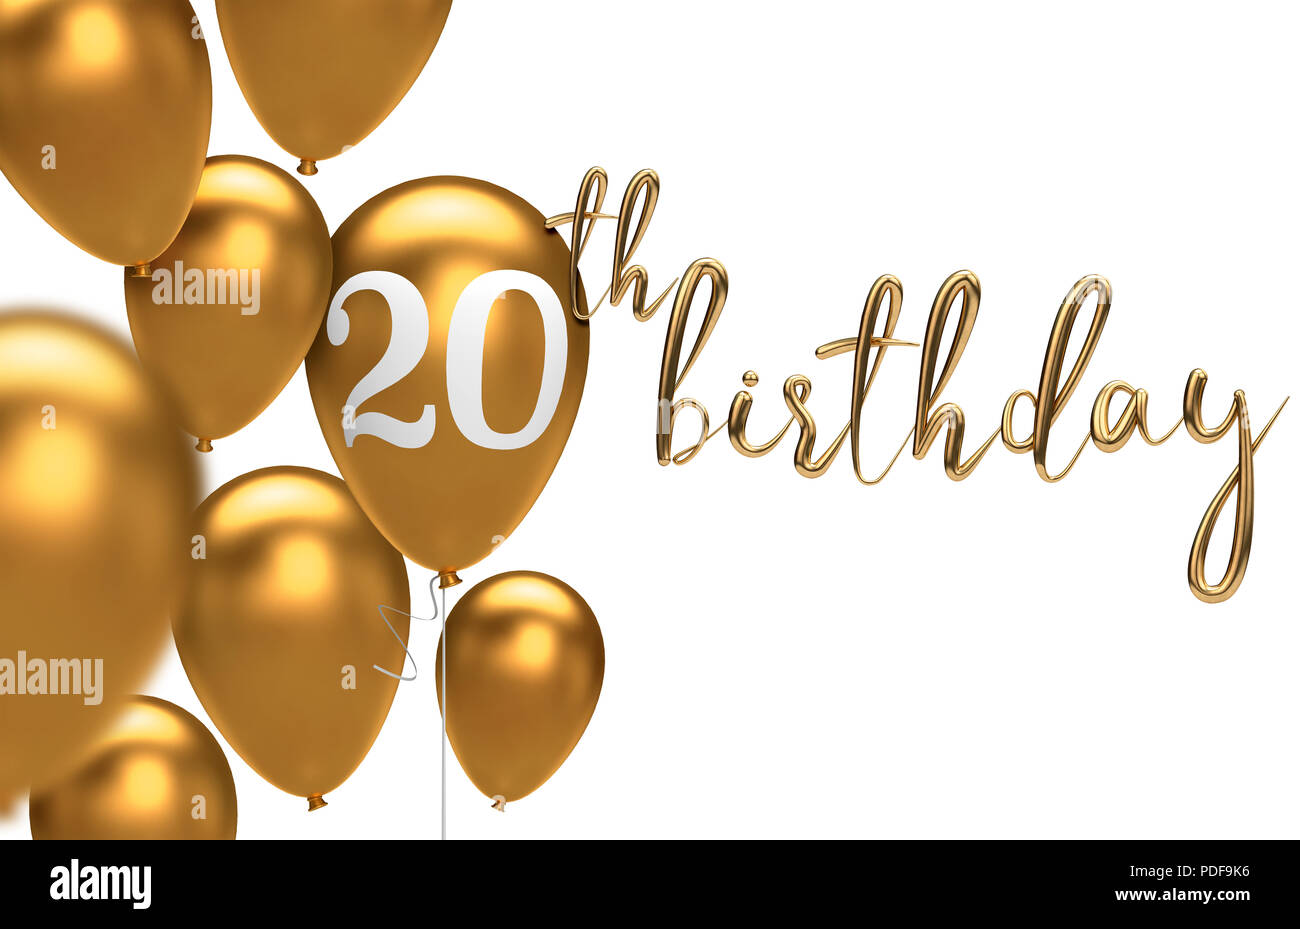 Gold Happy 20th Birthday Balloon Greeting Background 3D Rendering